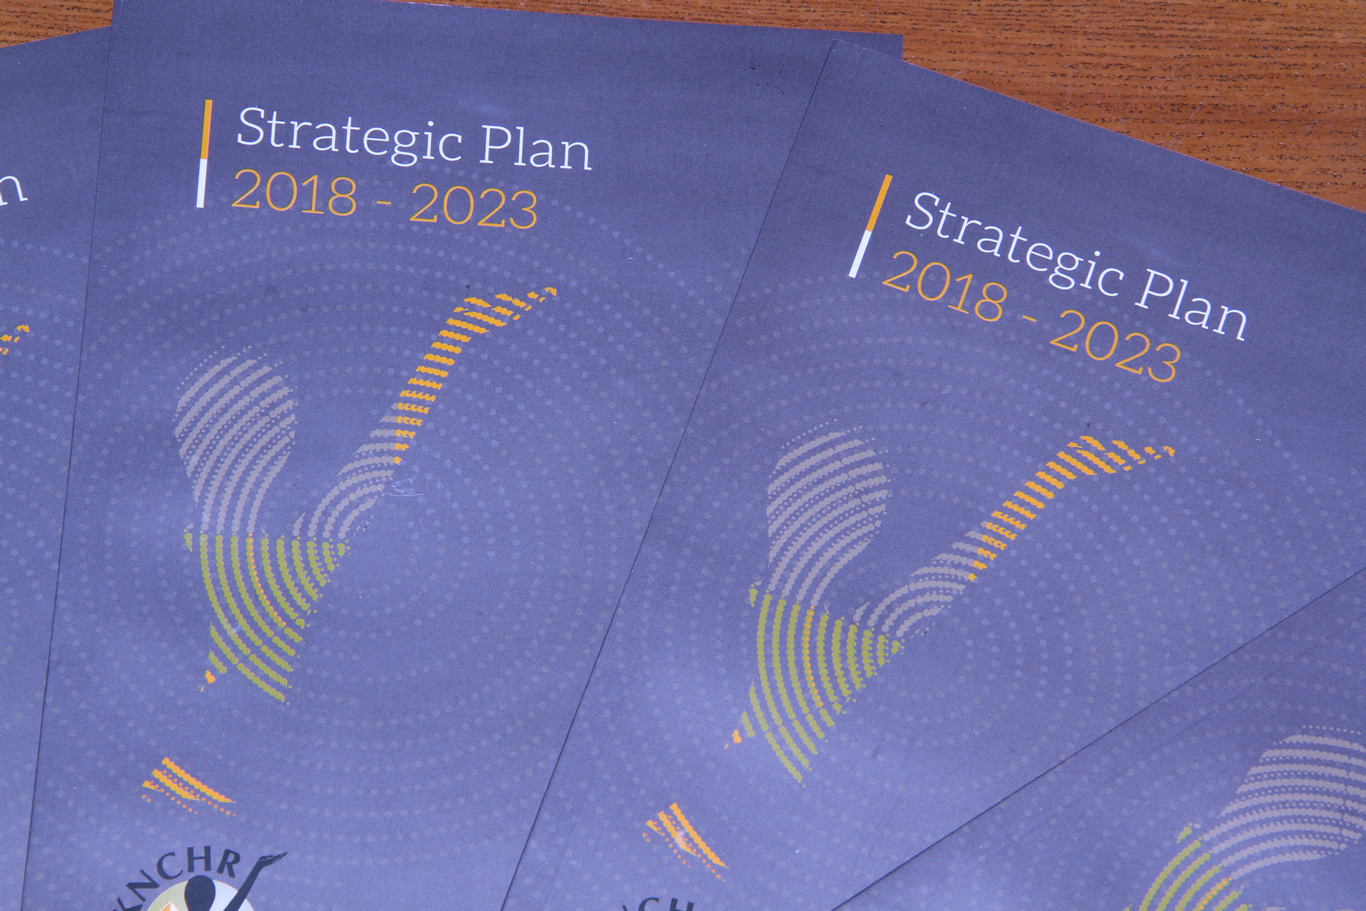 Strategic Plan 2018-2023